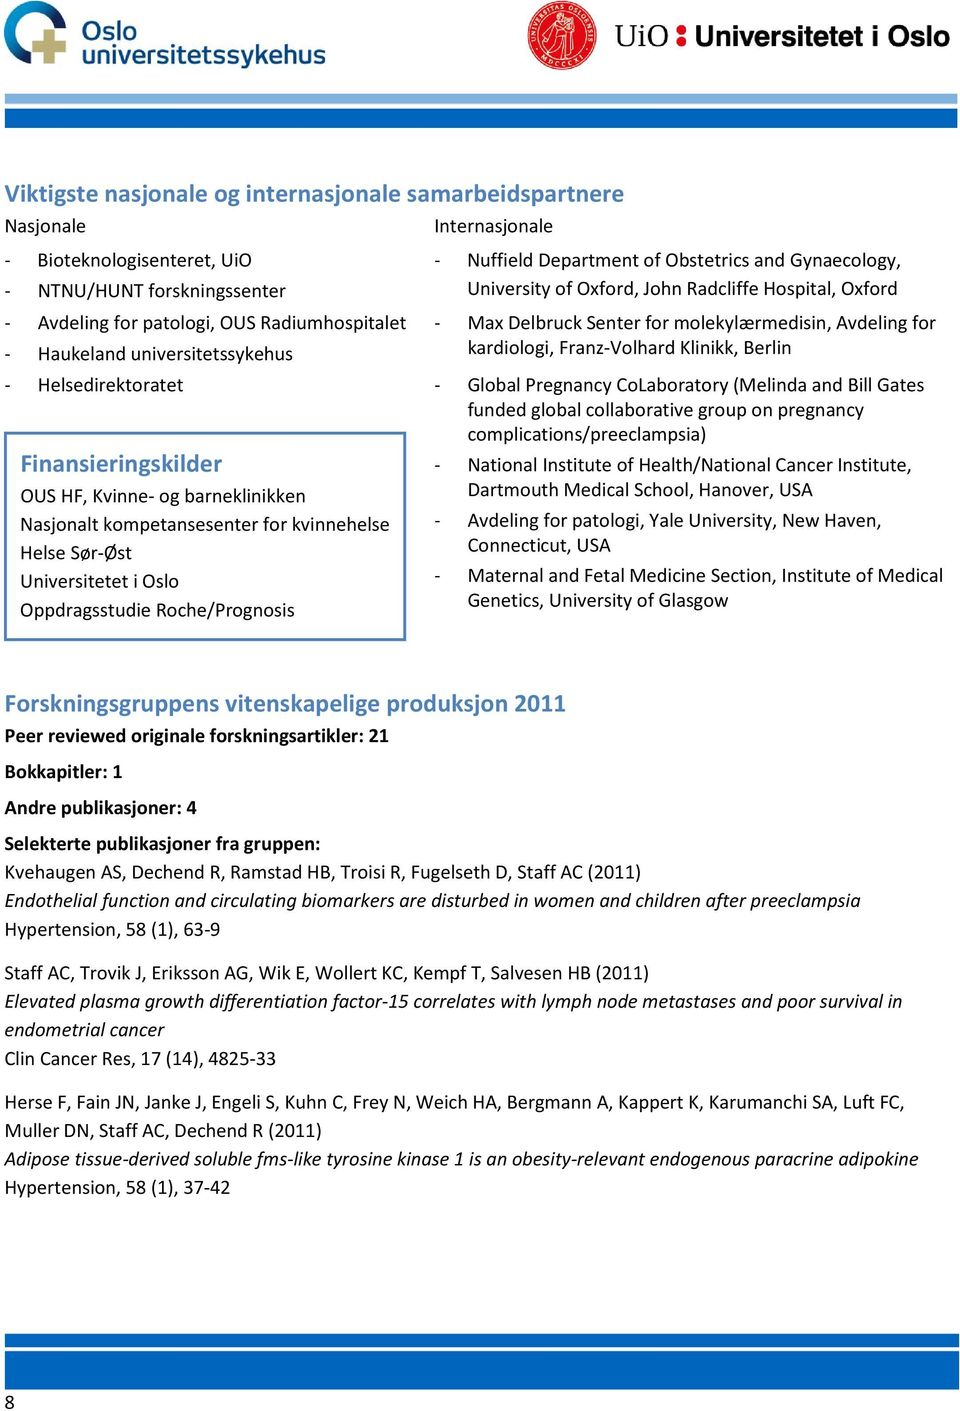 kardiologi, Franz-Volhard Klinikk, Berlin - Helsedirektoratet - Global Pregnancy CoLaboratory (Melinda and Bill Gates funded global collaborative group on pregnancy complications/preeclampsia)